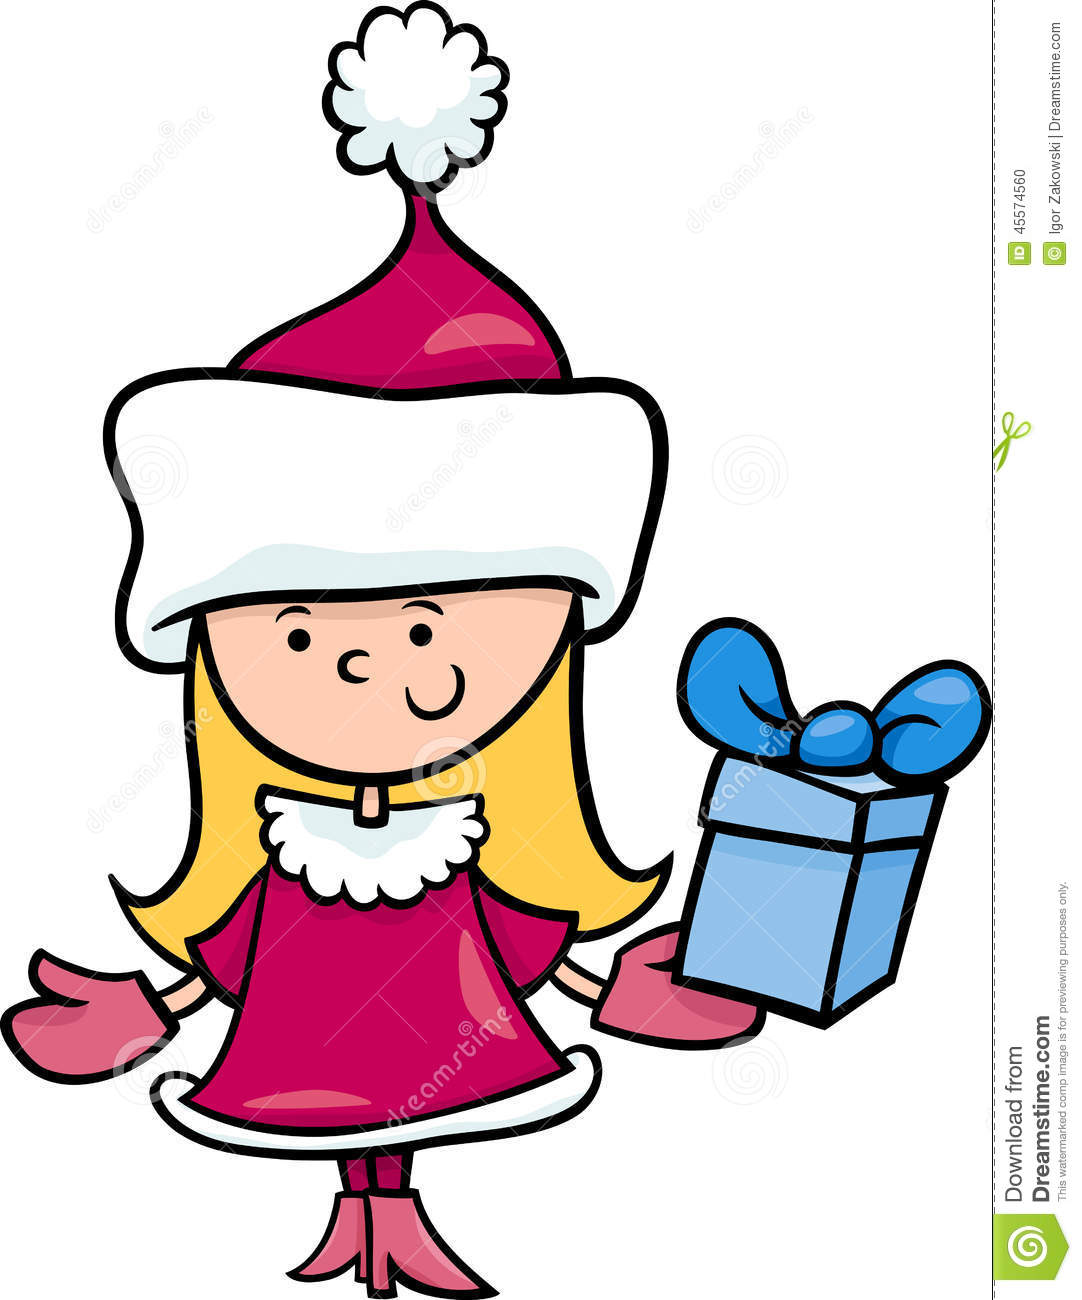 Christmas Toys Cartoon : Santa claus girl cartoon illustration stock vector image